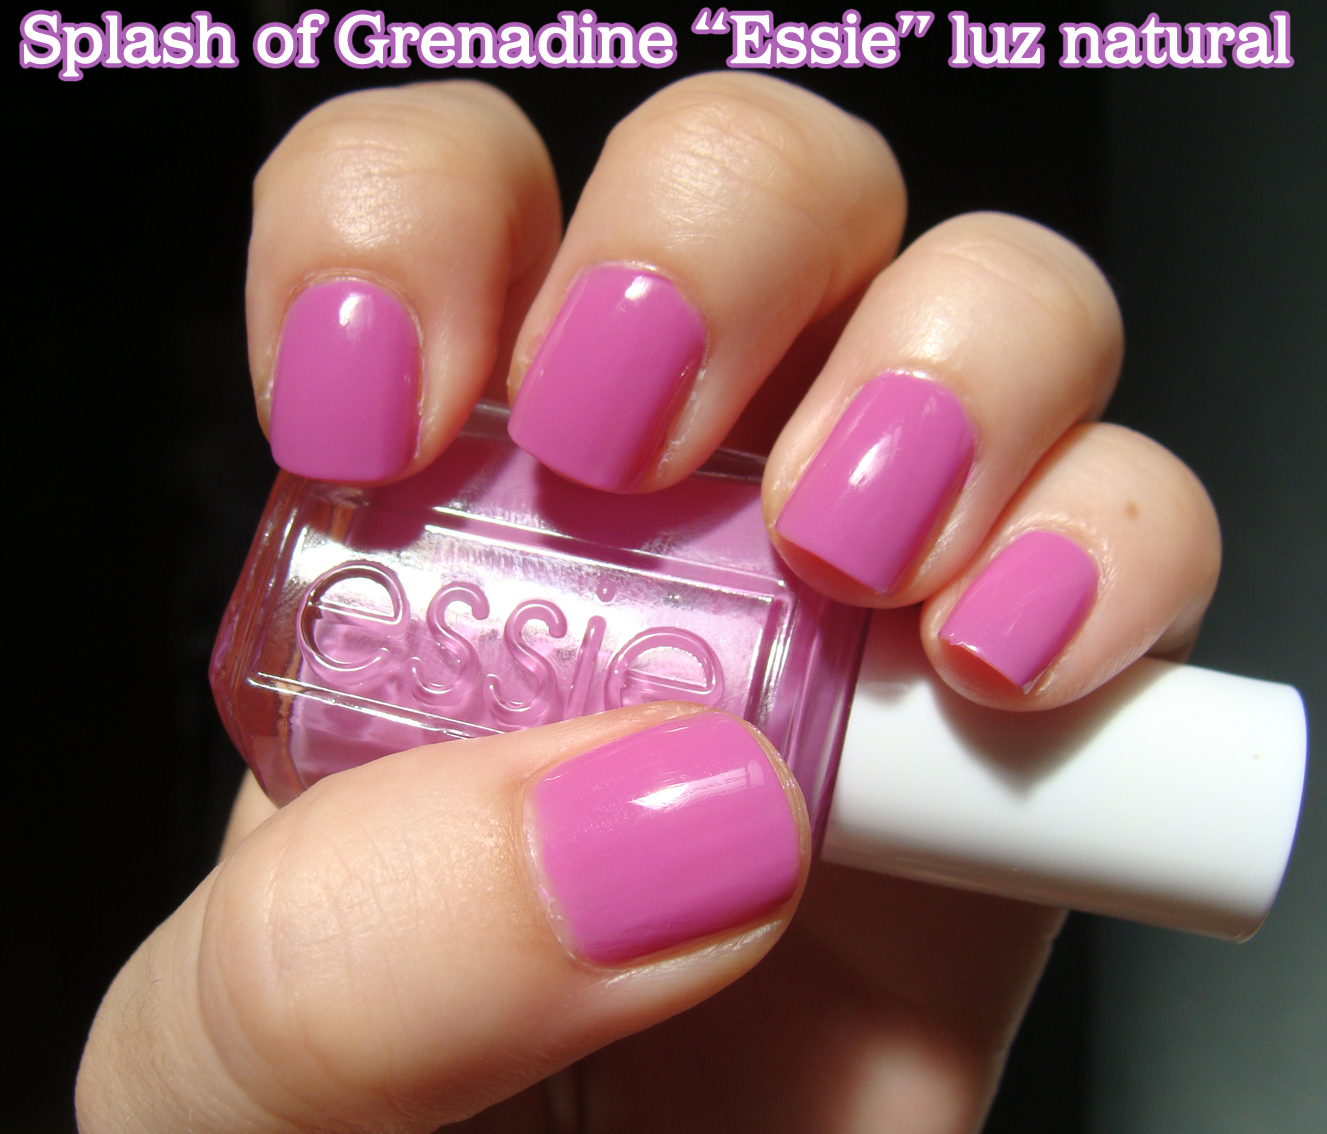 Esmaltes de Julie: Splash of Grenadine de Essie